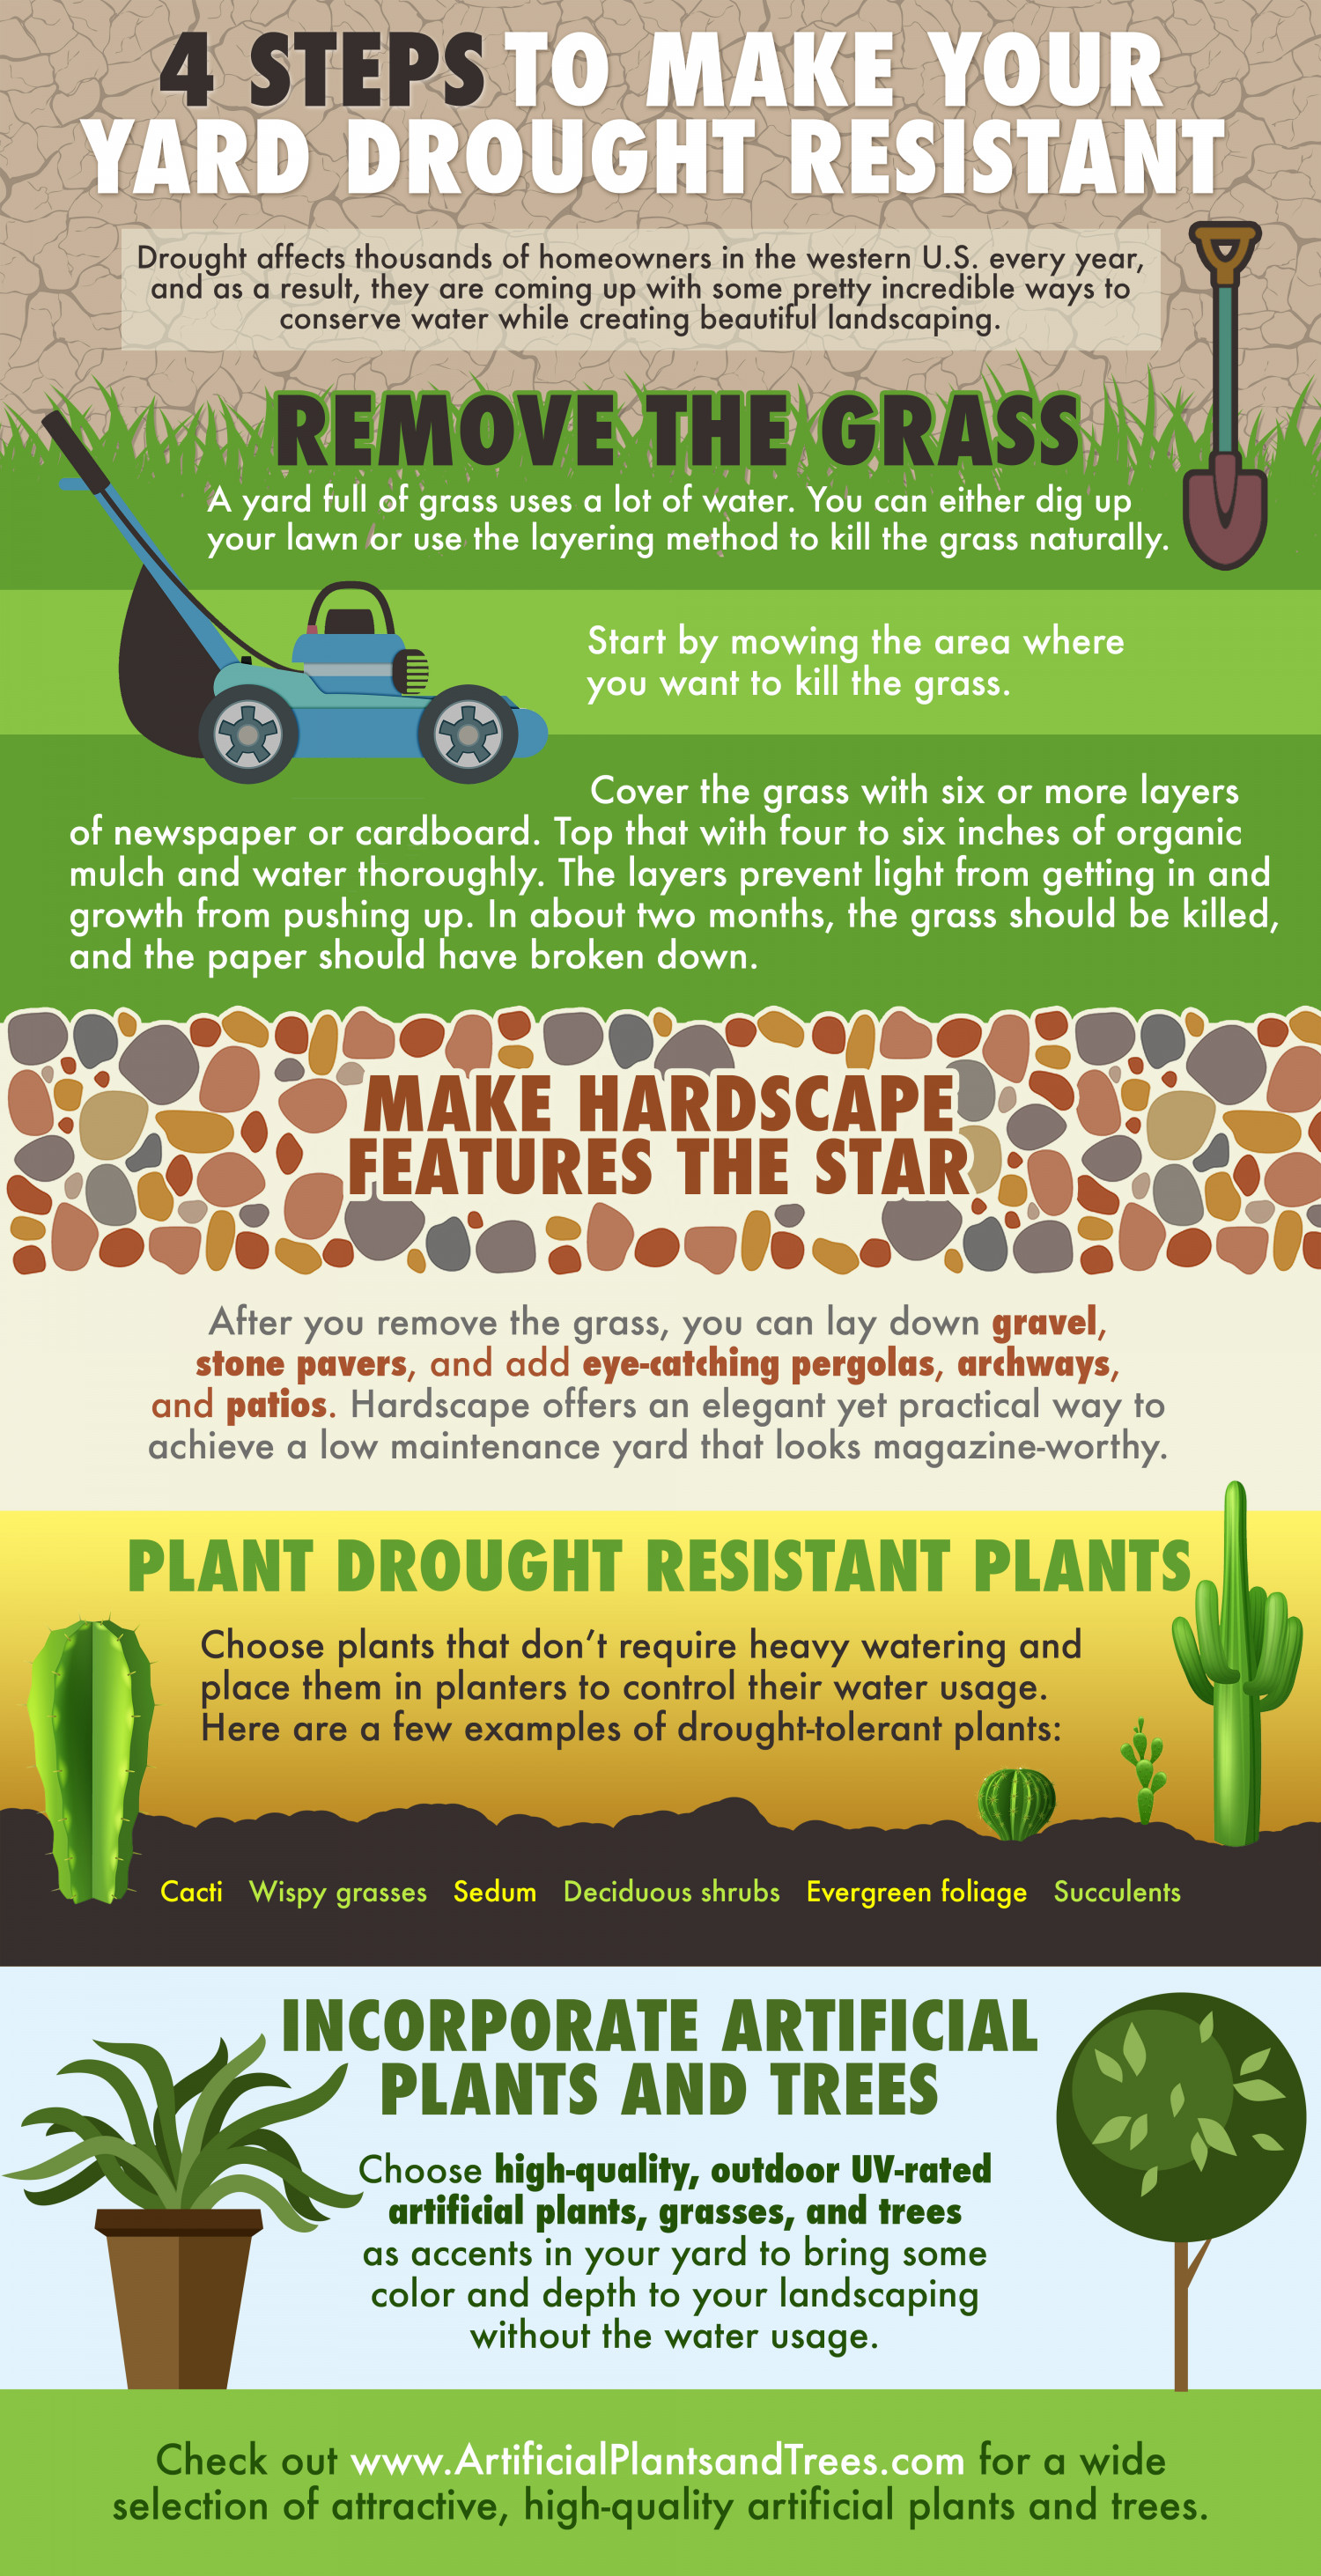 4 Ways to Make Your Yard Drought Resistant Infographic